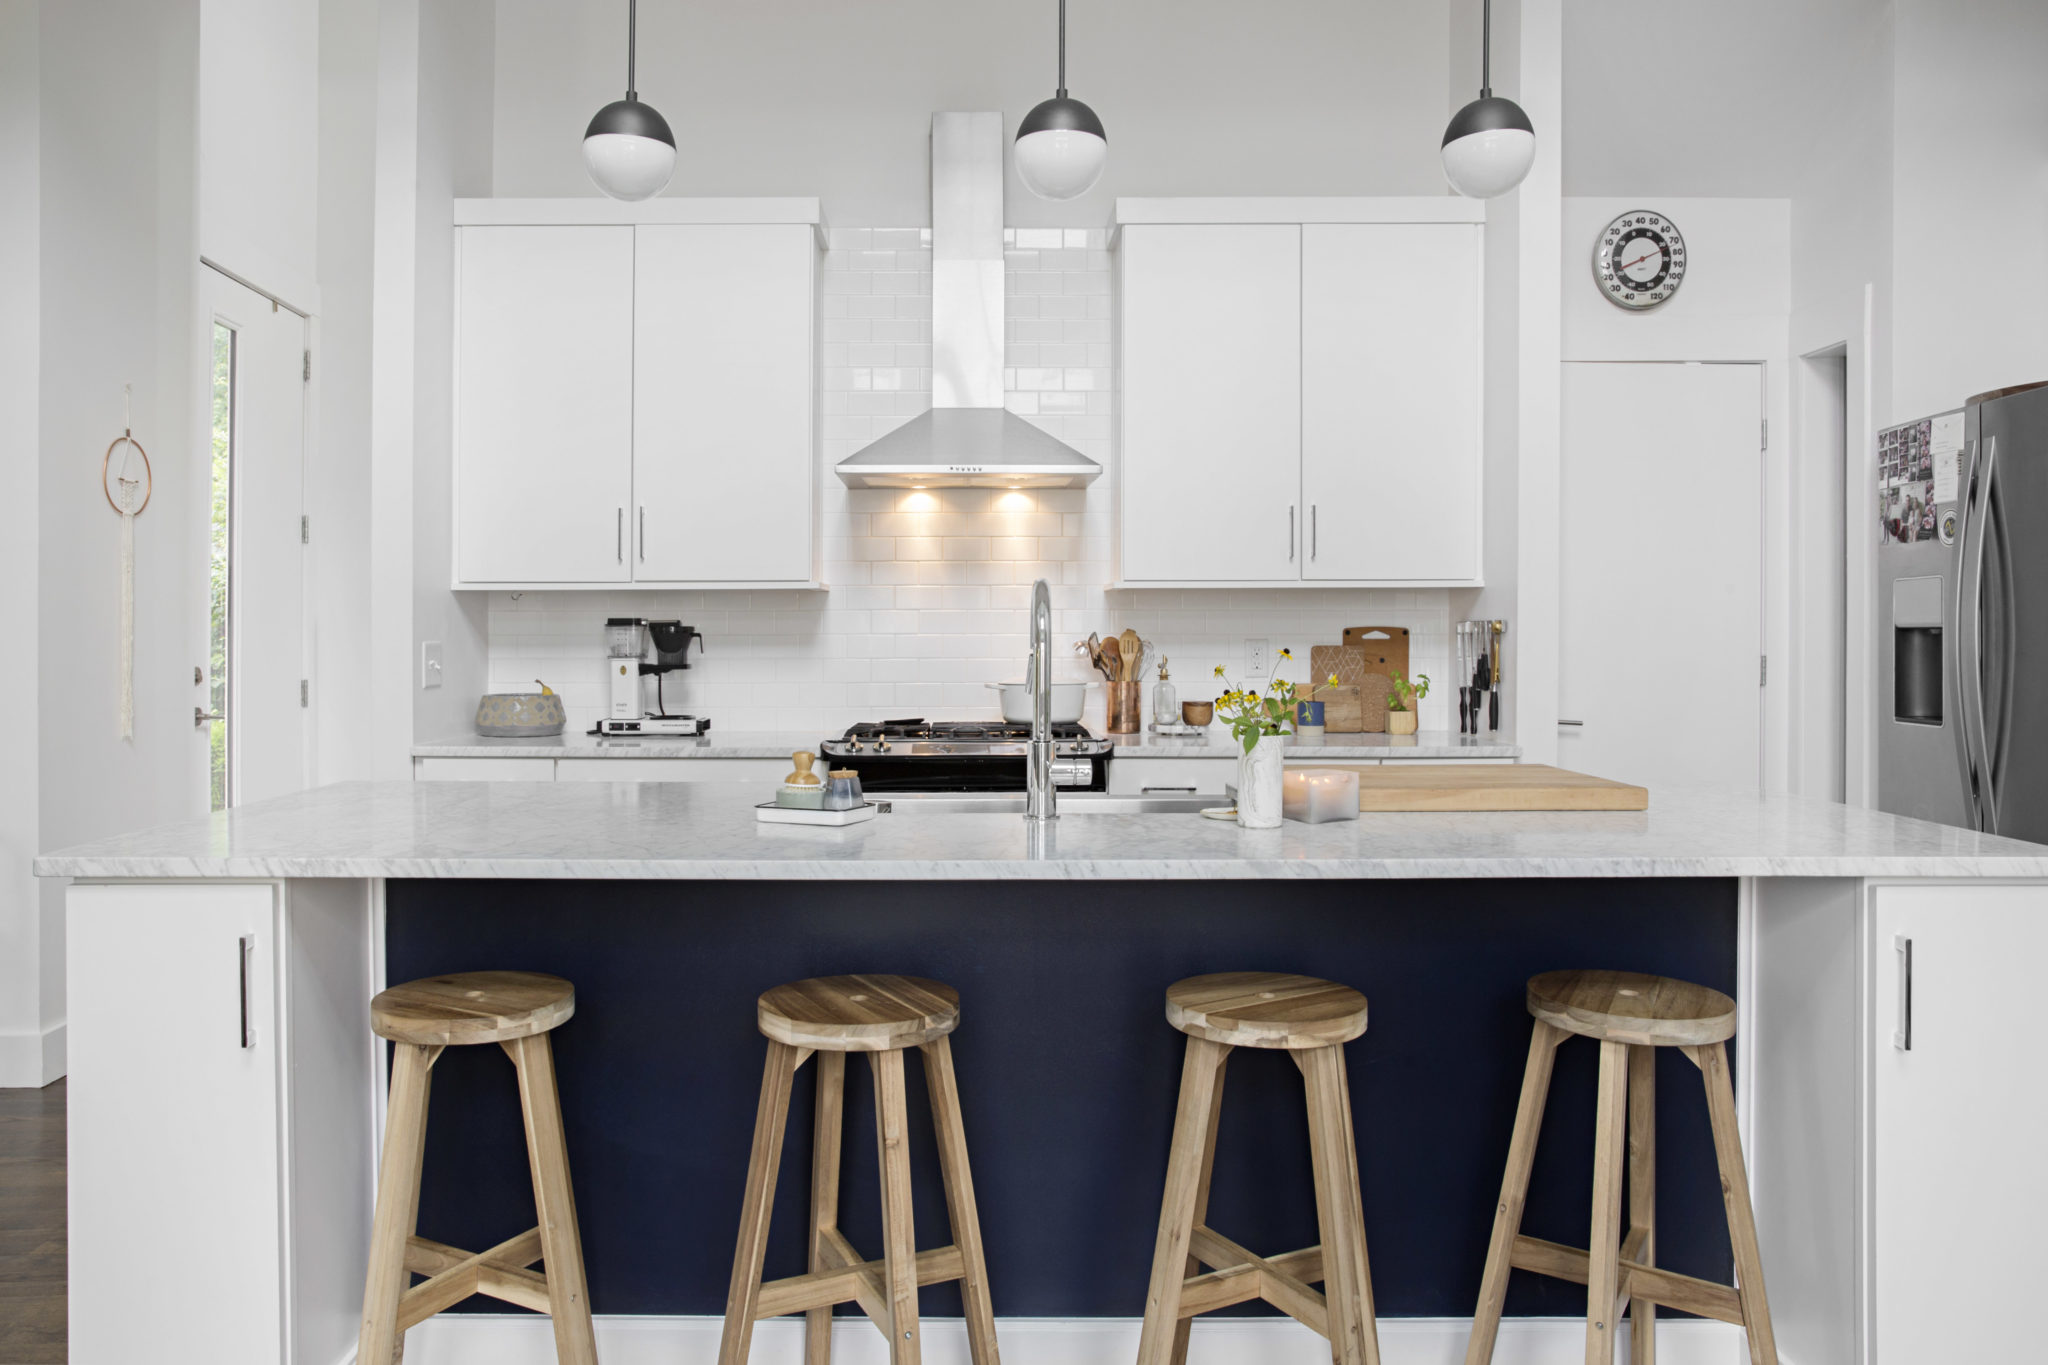 These are the top kitchen trends for 2018 hanley wood for Kitchen design trends 2018